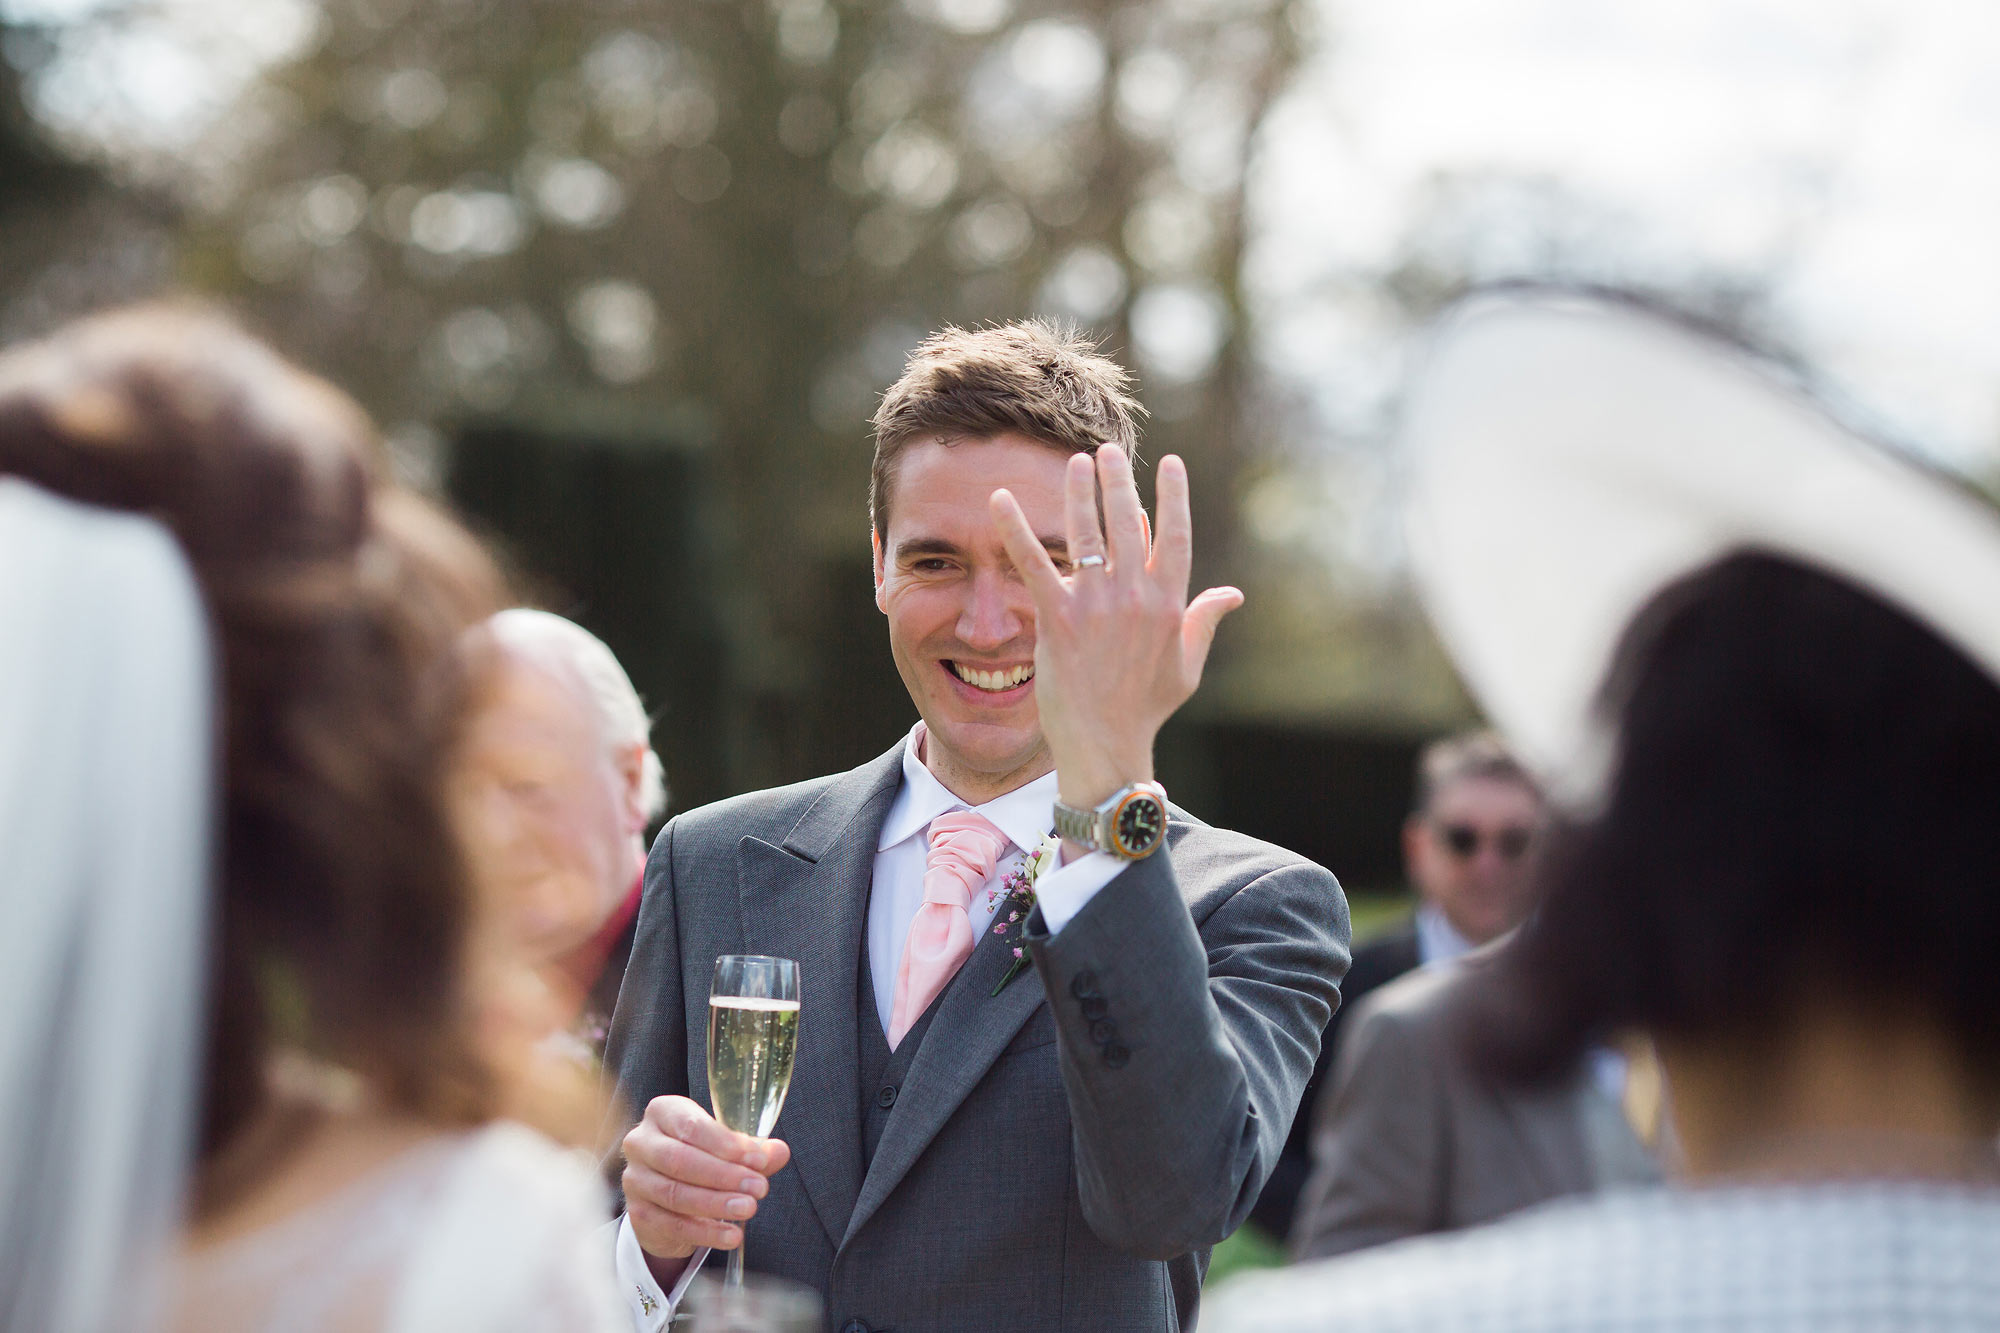 The groom shows off his ring in the west terrace of Hengrave Hall